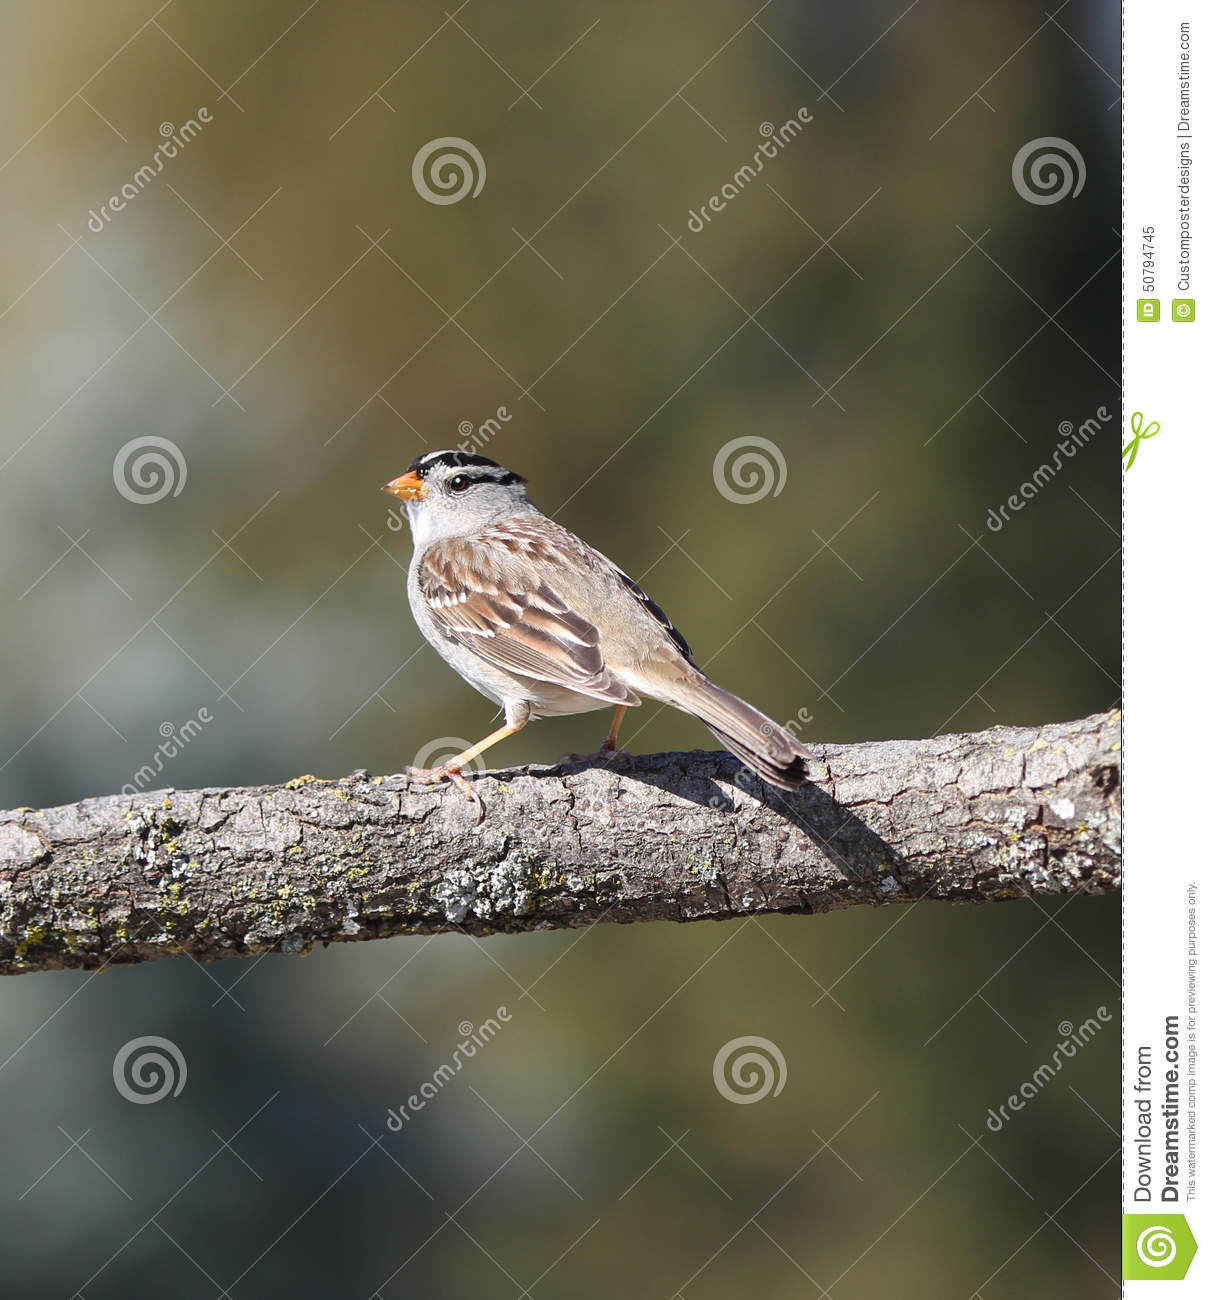 Download A white crowned sparrow. stock image. Image of bird, black - 50794745